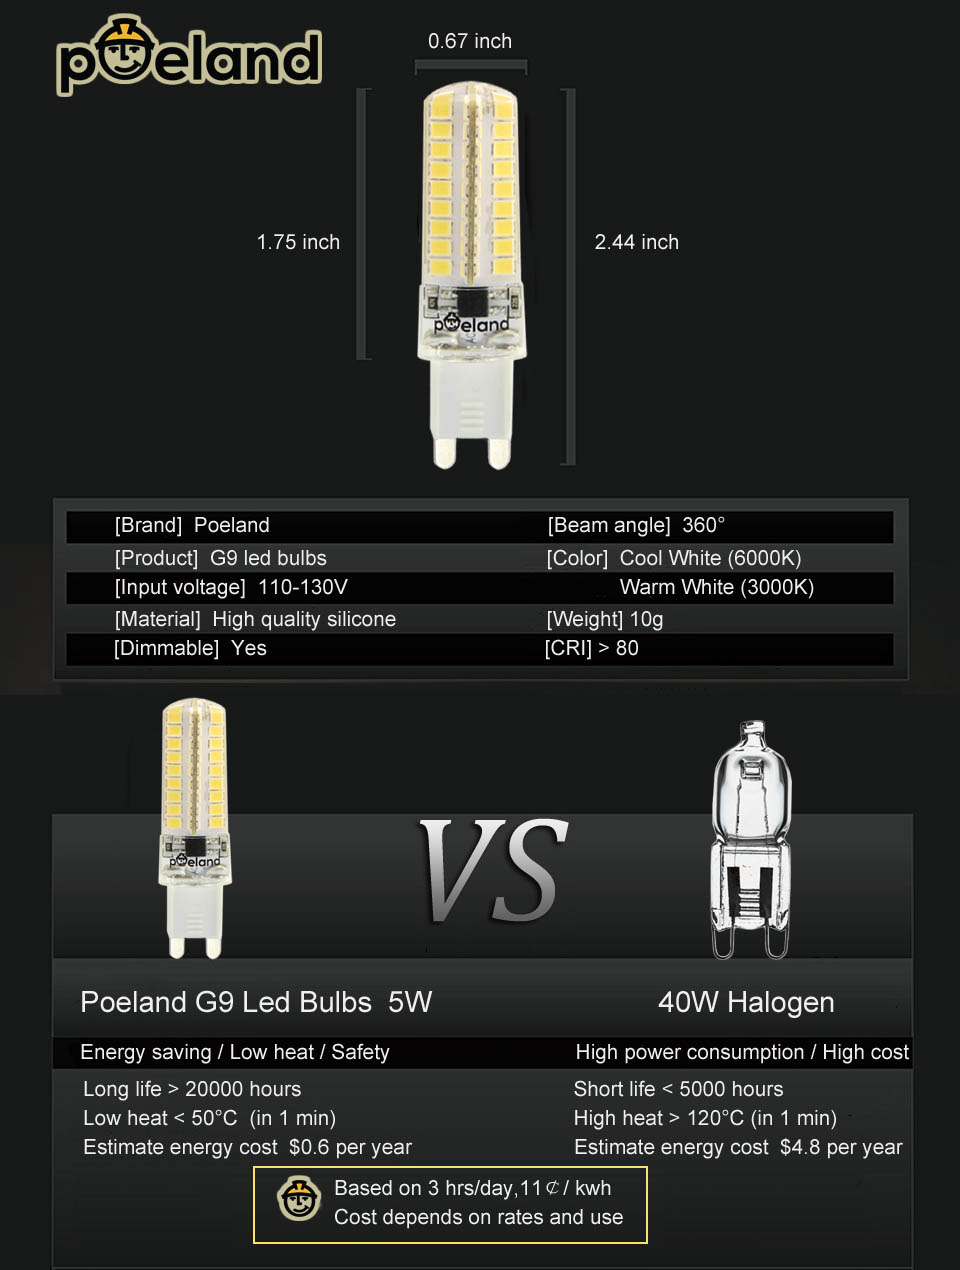 we recommend using these models lutron tg 600ph wh lutron s600h wh leviton iw leviton tbl03 10e 2 the bulb